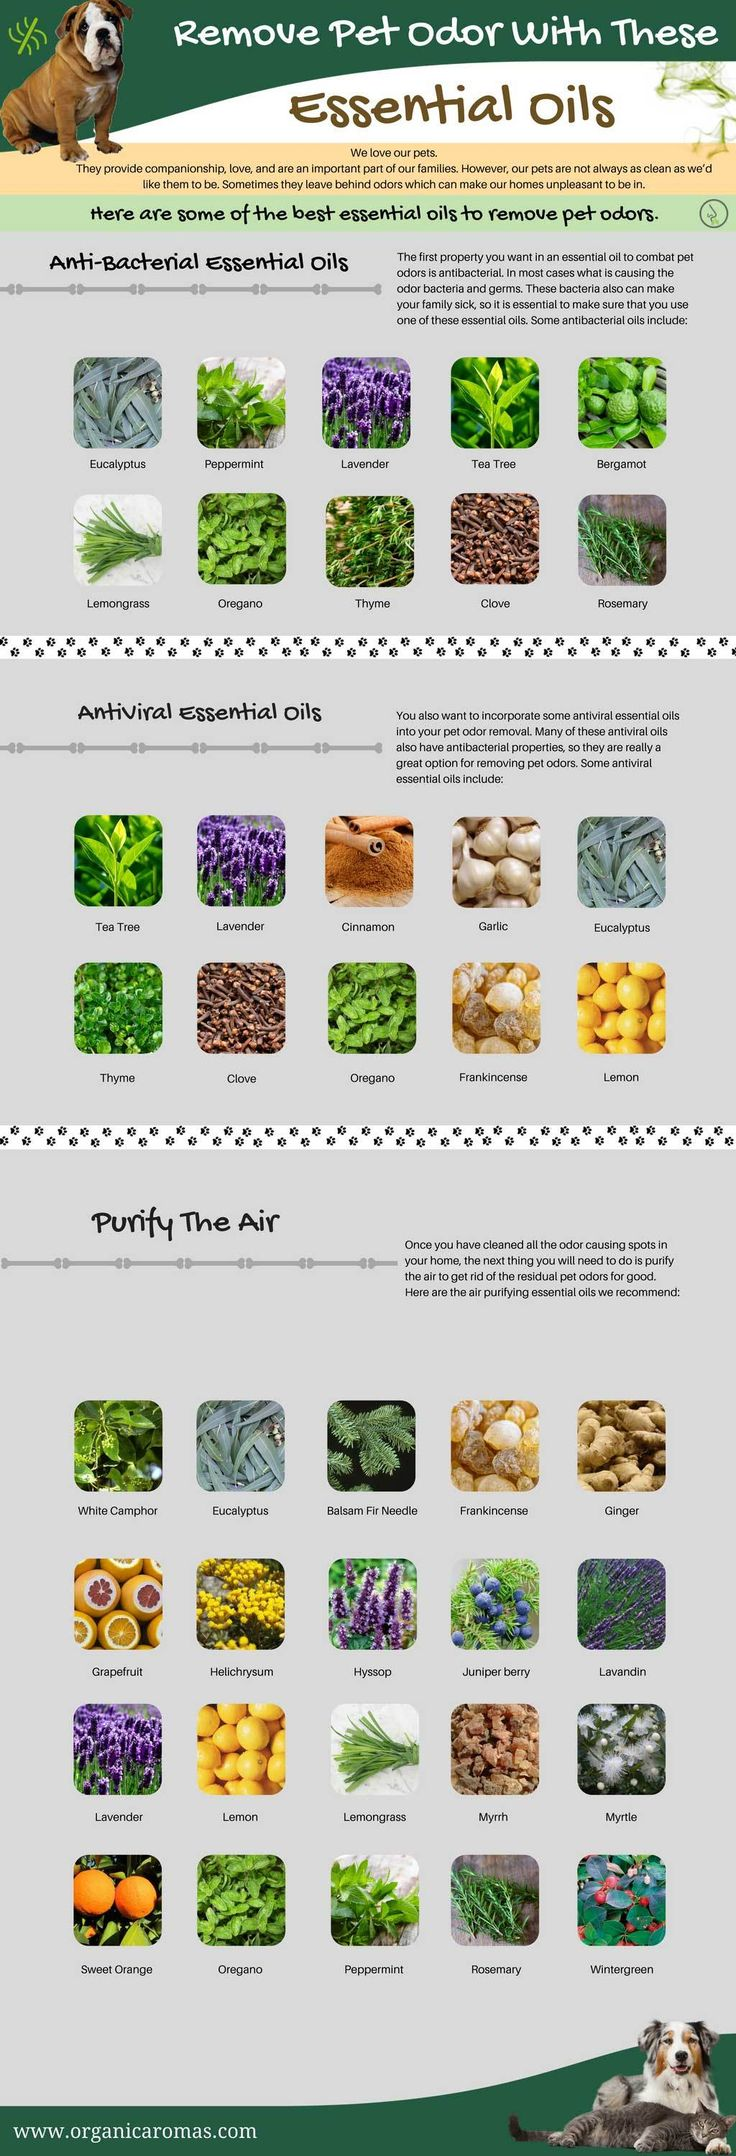 Remove Pet Odor with Essential Oils Info-graphic